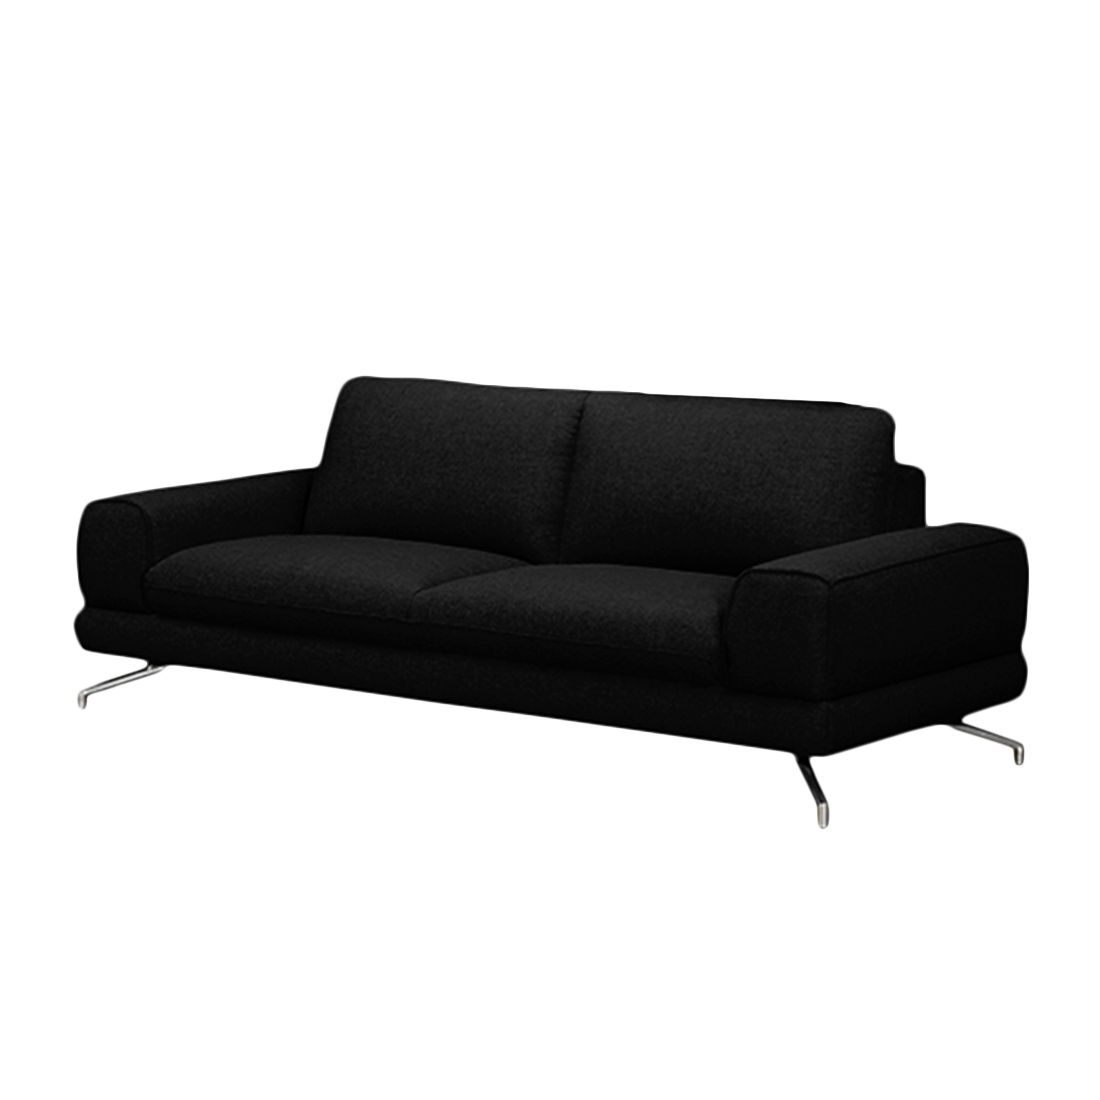 sofa lennard 3 sitzer webstoff schwarz ohne kopfst tze loftscape g nstig. Black Bedroom Furniture Sets. Home Design Ideas